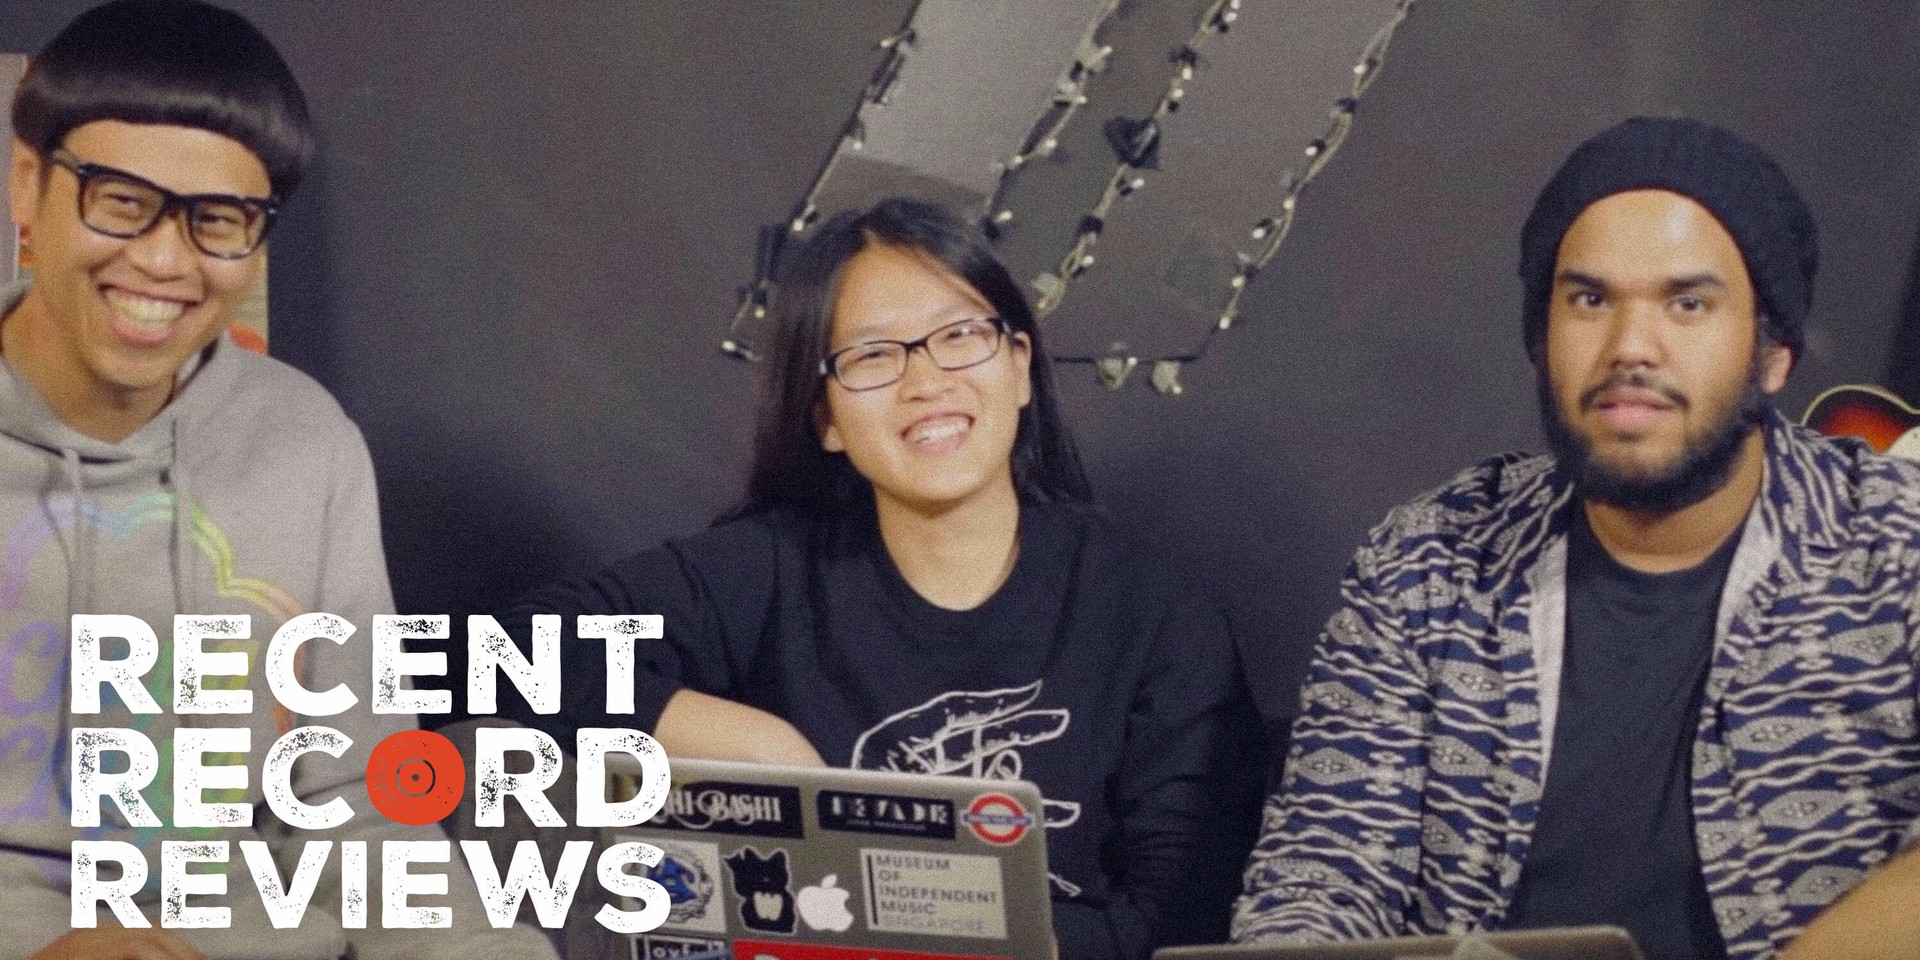 WATCH: Bandwagon Recent Record Reviews #006 - Top 10 Singapore LPs of 2015